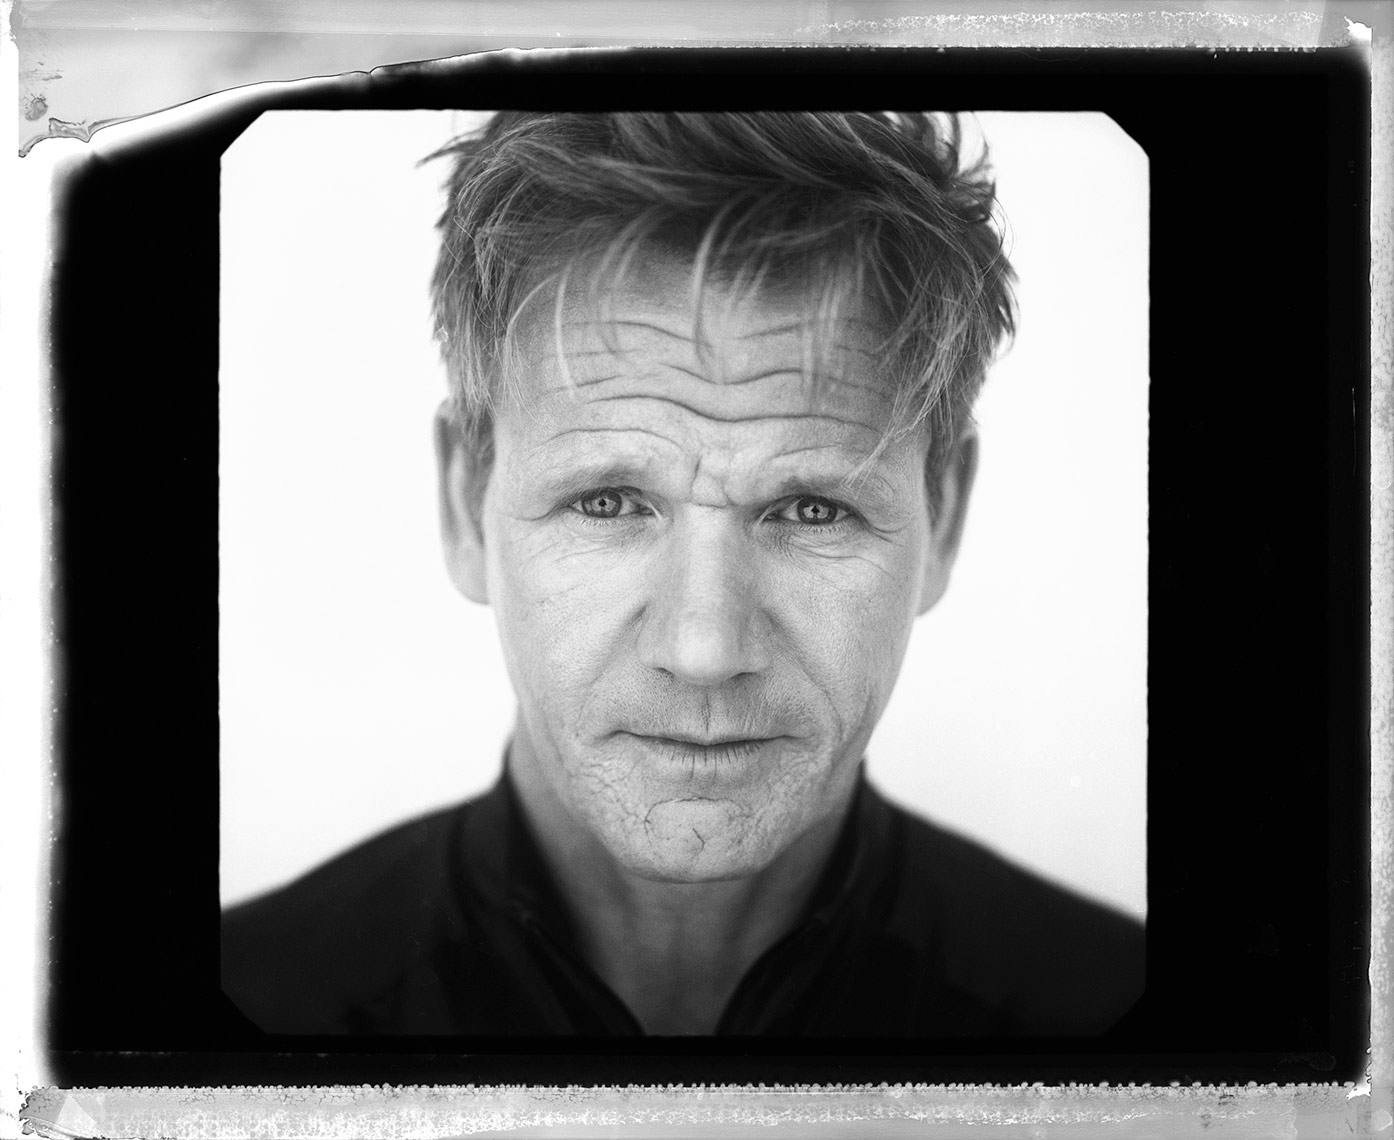 010-GordonRamsay_BW_Portrait-001-high